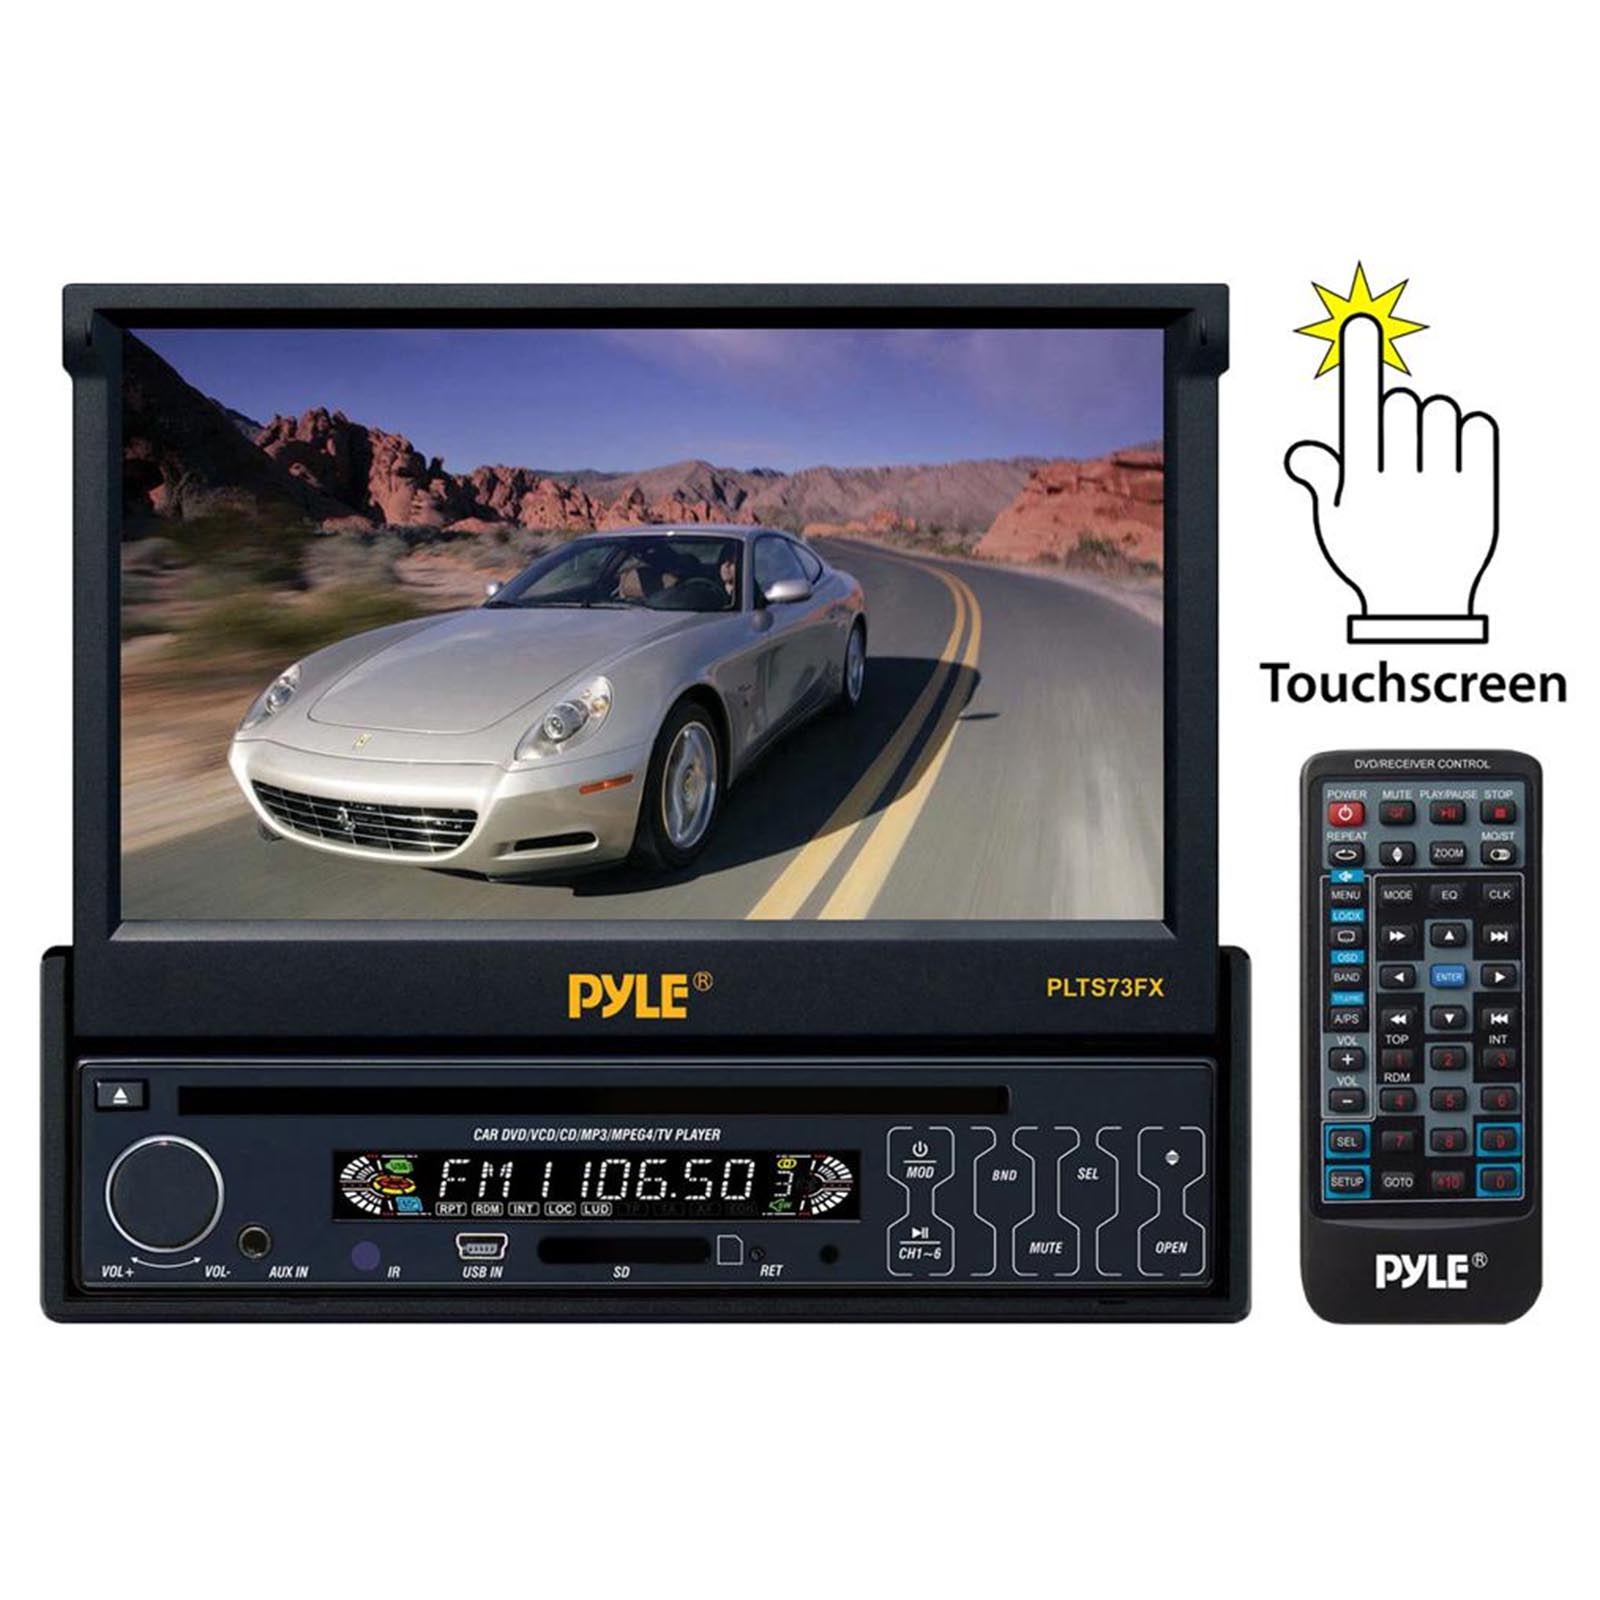 "Pyle 7"" Single DIN In-Dash Motorized TFT/LCD Monitor w/ DVD/CD/MP3/MP4/USB/SD/AM-FM Player"